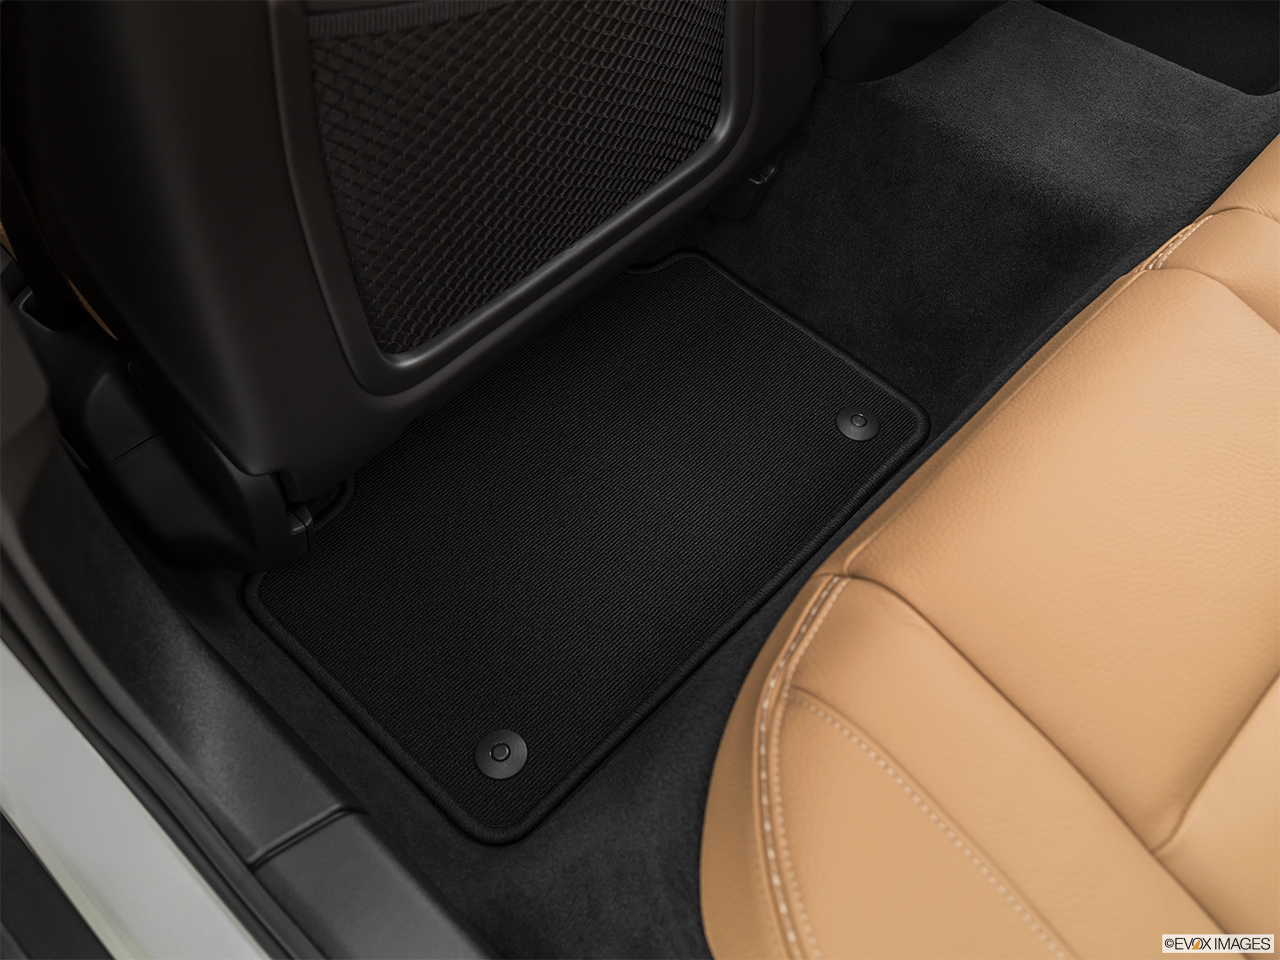 2020 Volvo V60 Cross Country T5 AWD Rear driver's side floor mat. Mid-seat level from outside looking in.